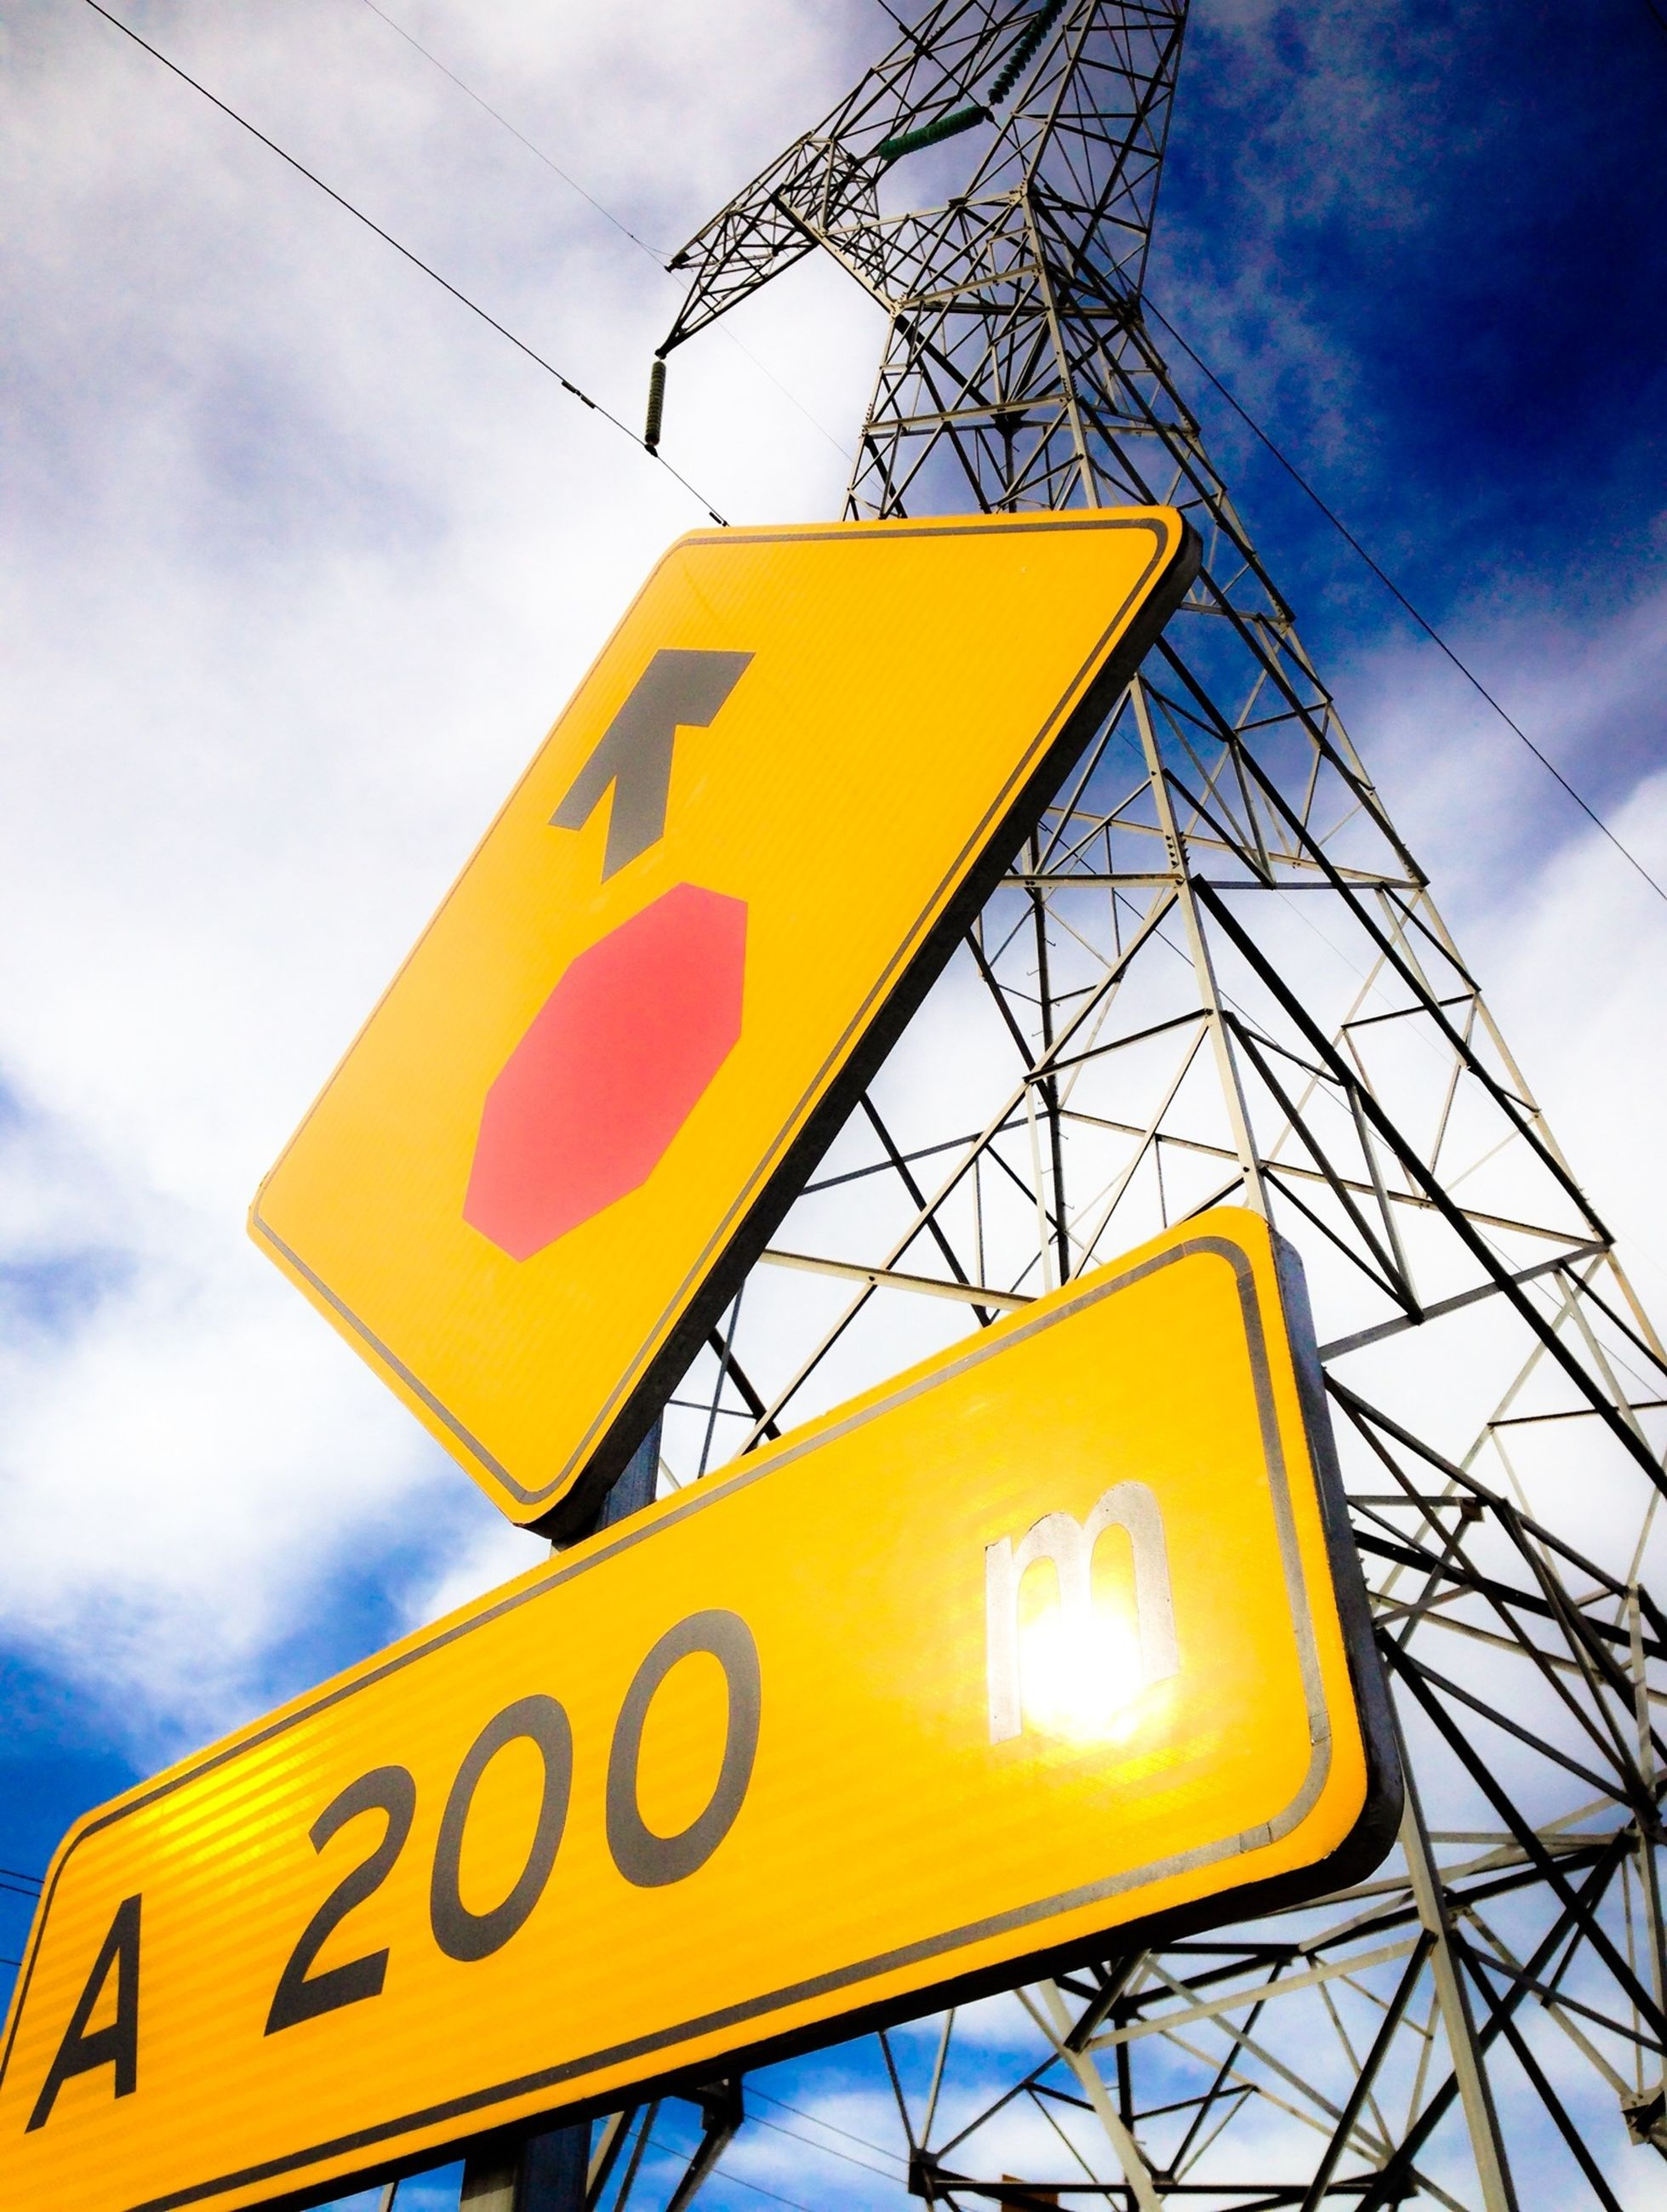 yellow, text, communication, low angle view, western script, information sign, sky, guidance, road sign, sign, information, warning sign, directional sign, capital letter, cloud - sky, arrow symbol, cloud, cloudy, pole, direction